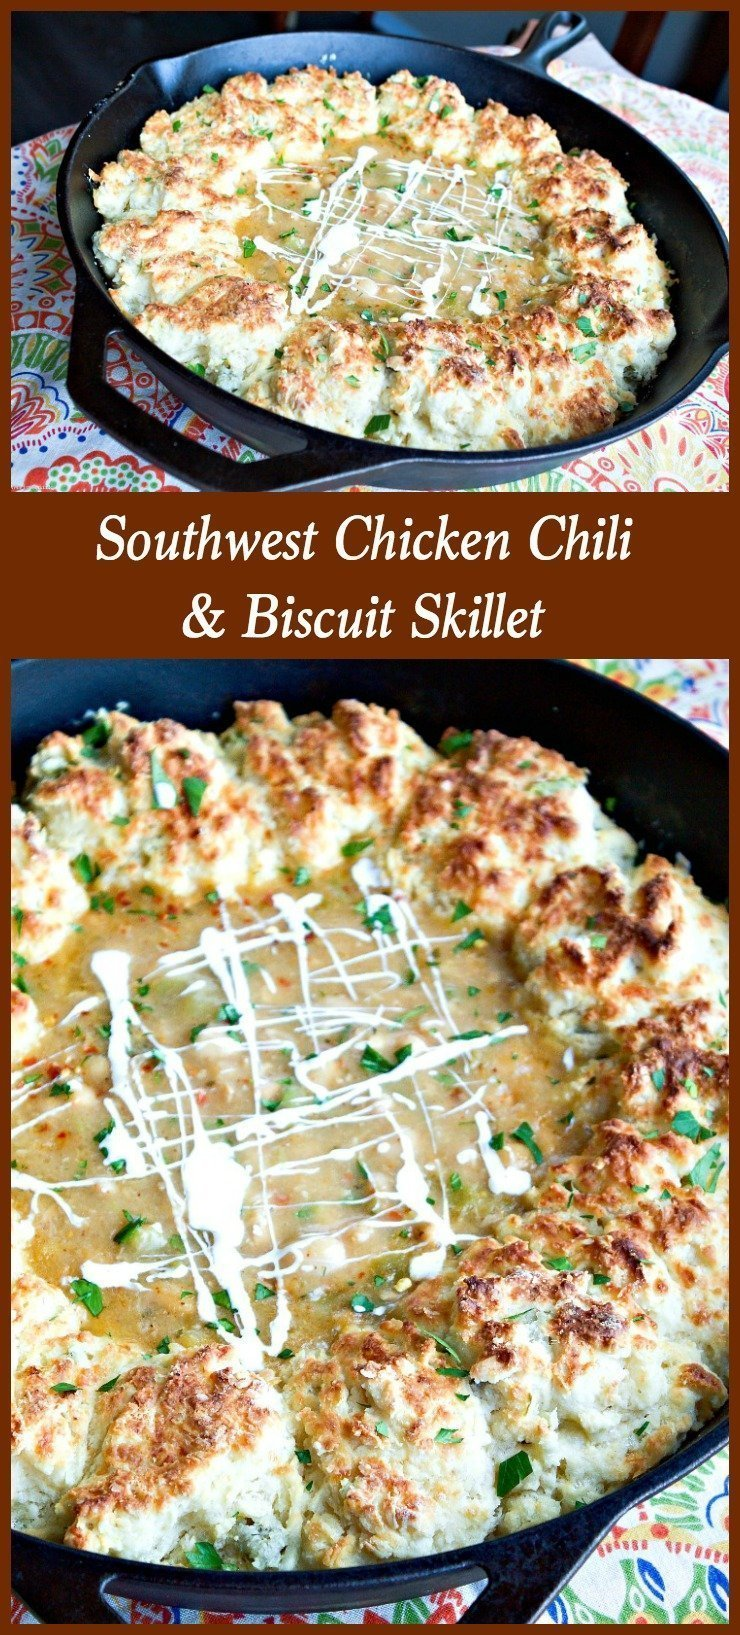 Southwest Chicken Chili and Biscuit Skillet